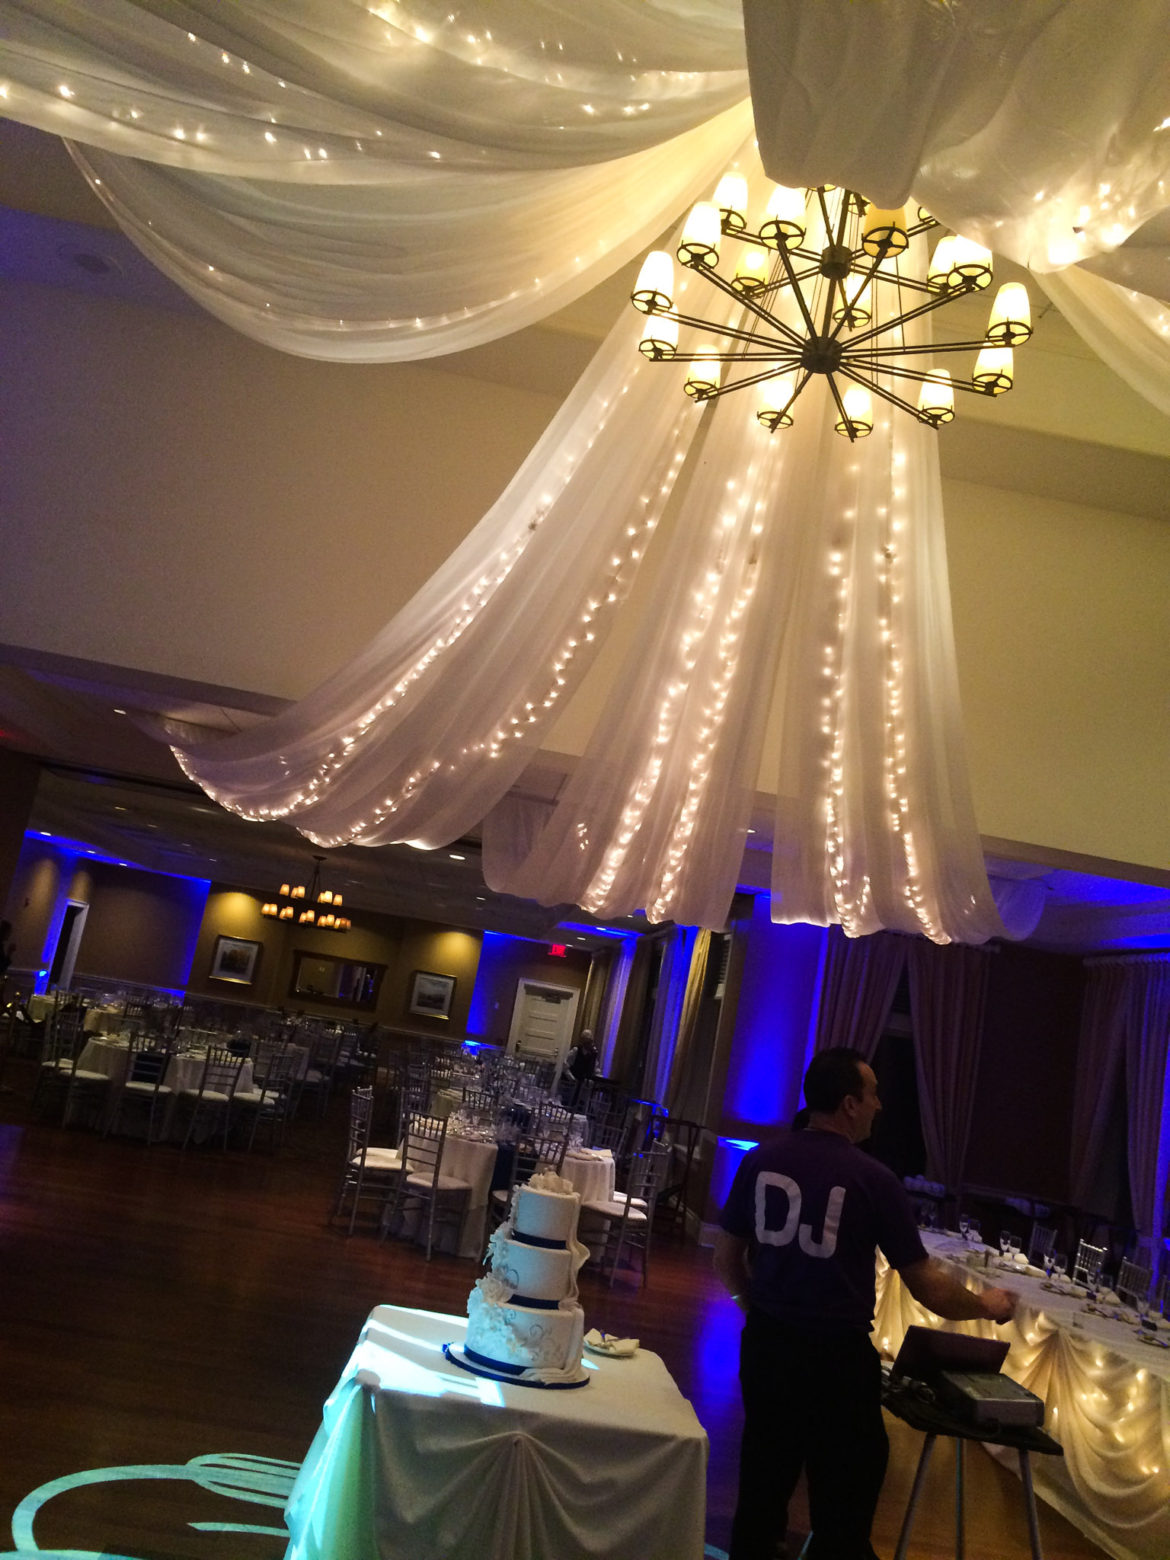 Elegant_Event_Lighting_Chicago_Arrowhead_Wheaton_Wedding_Uplighting_Twinkle_Ceiling_Draping_Fairy_Lights_Ceiling_Draping_Starburst